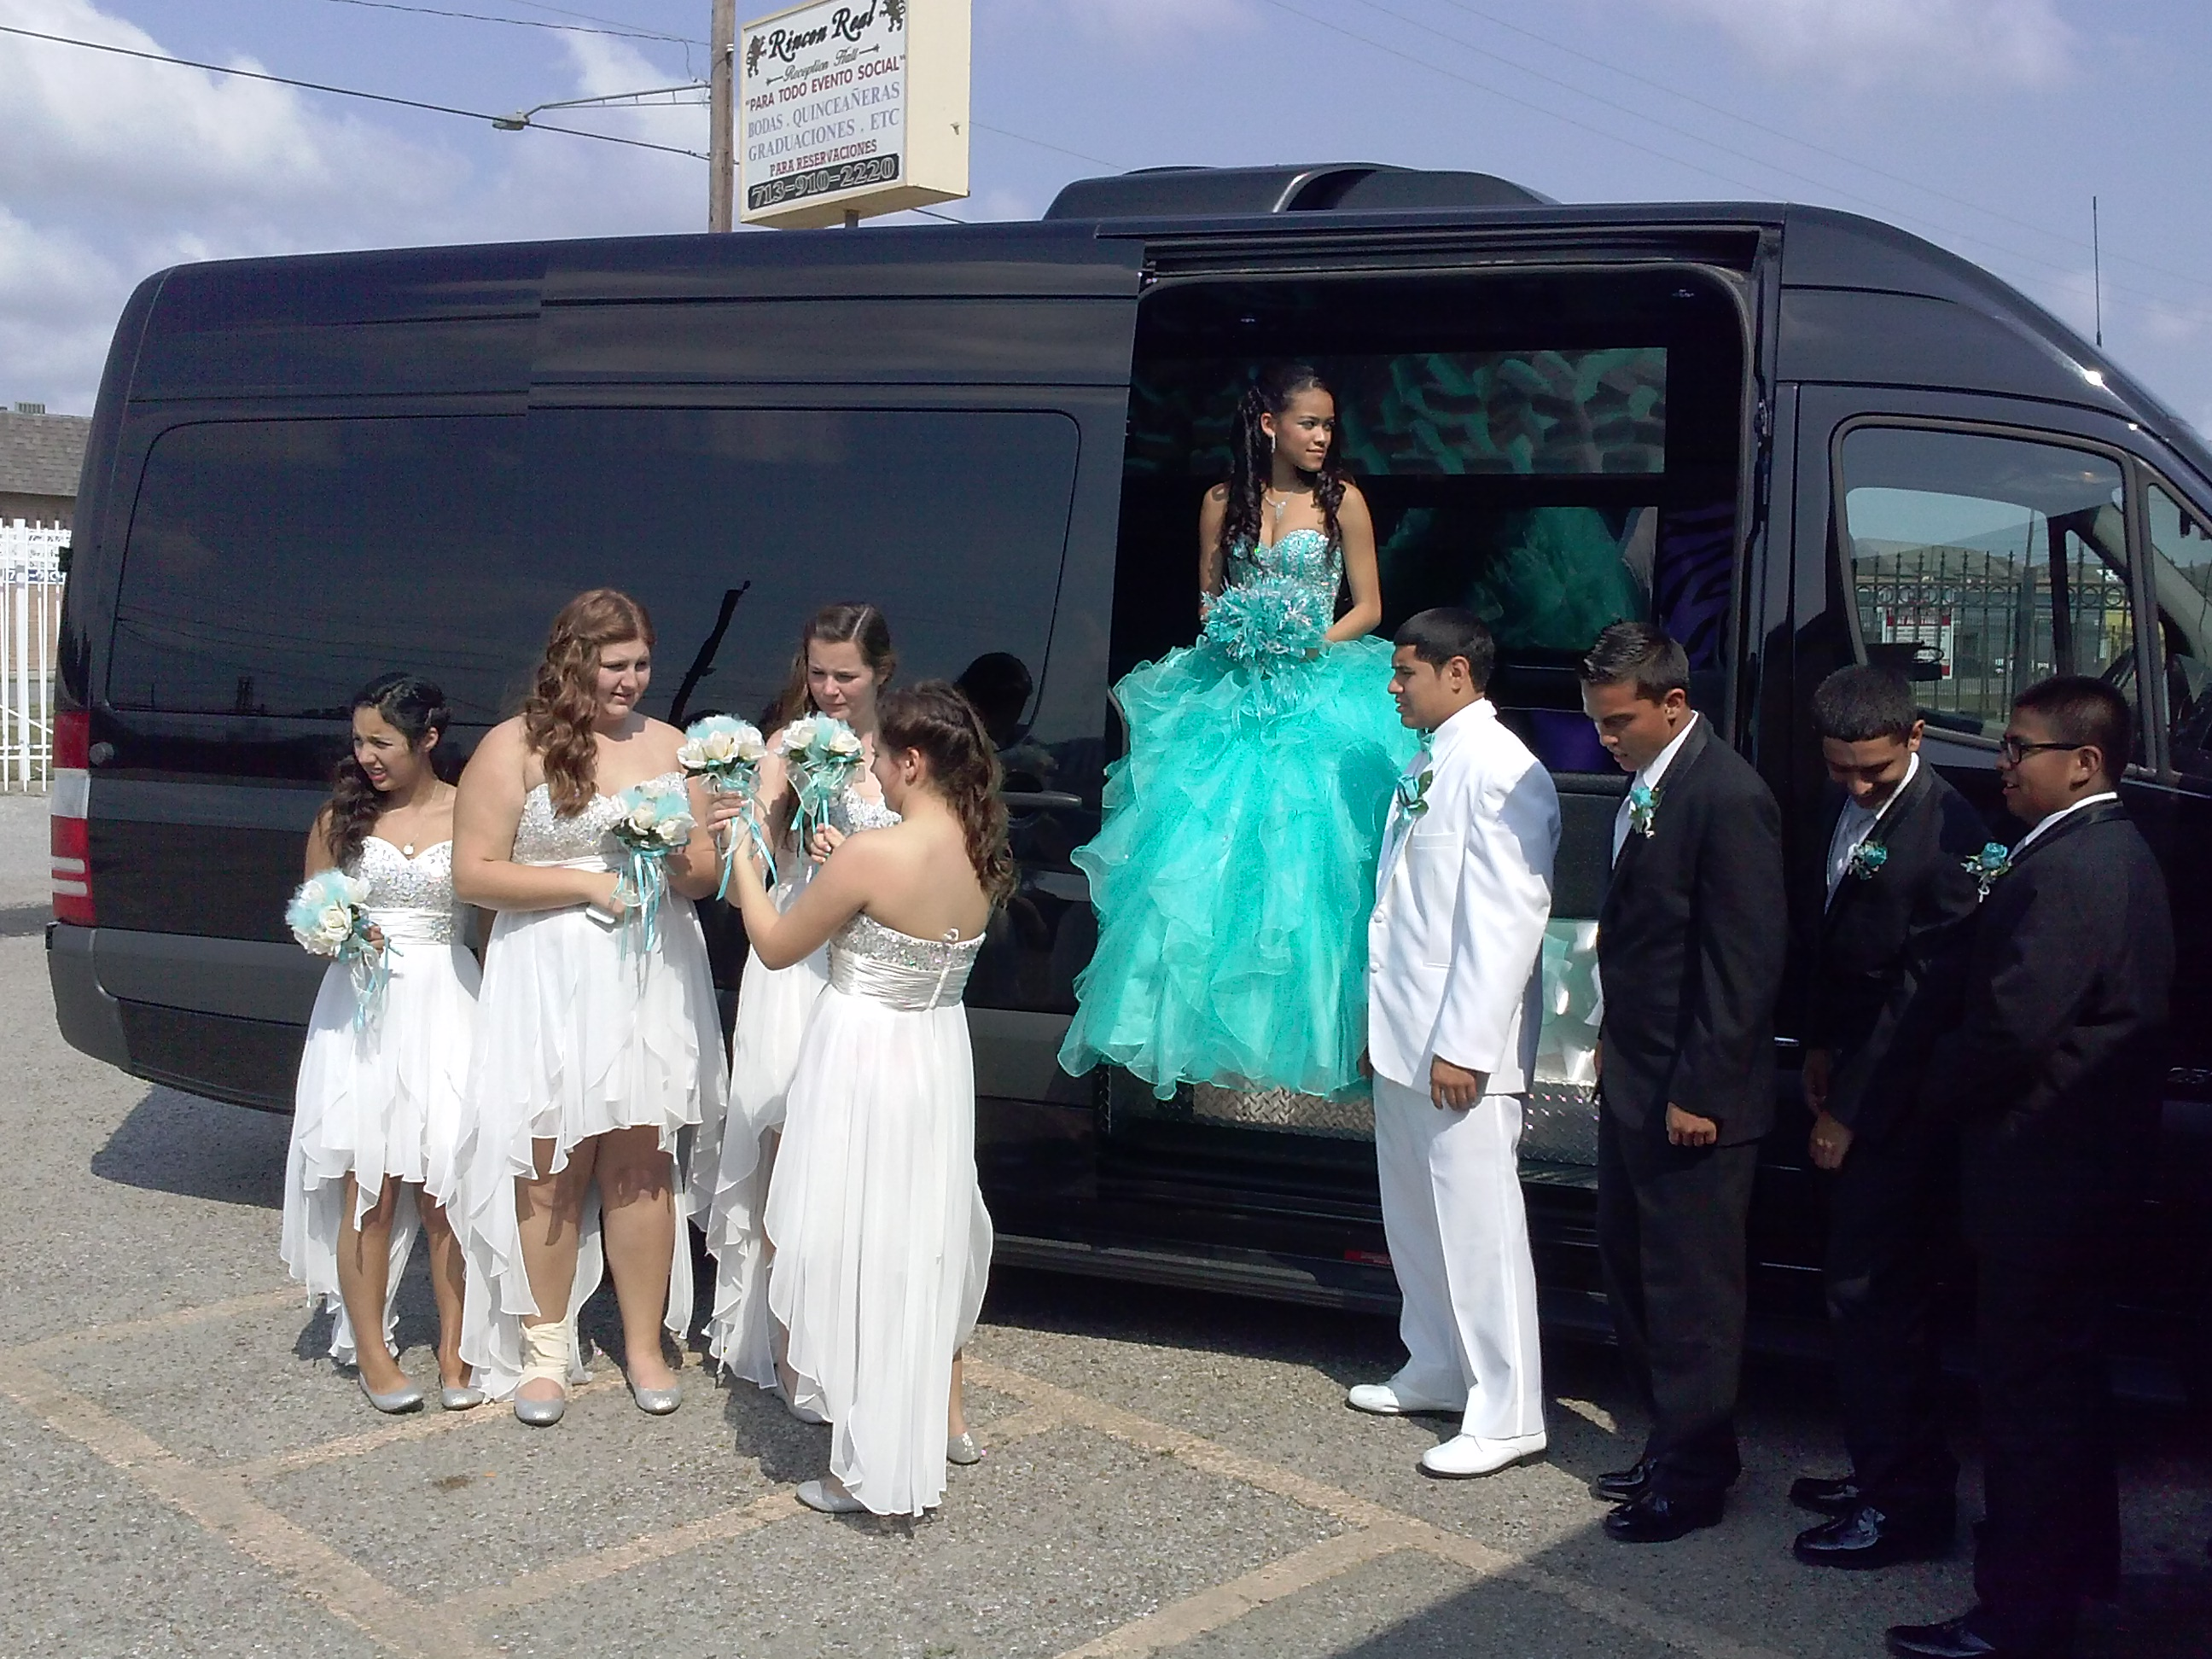 RENT PARTY BUS FOR YOUR QUINCEANERA